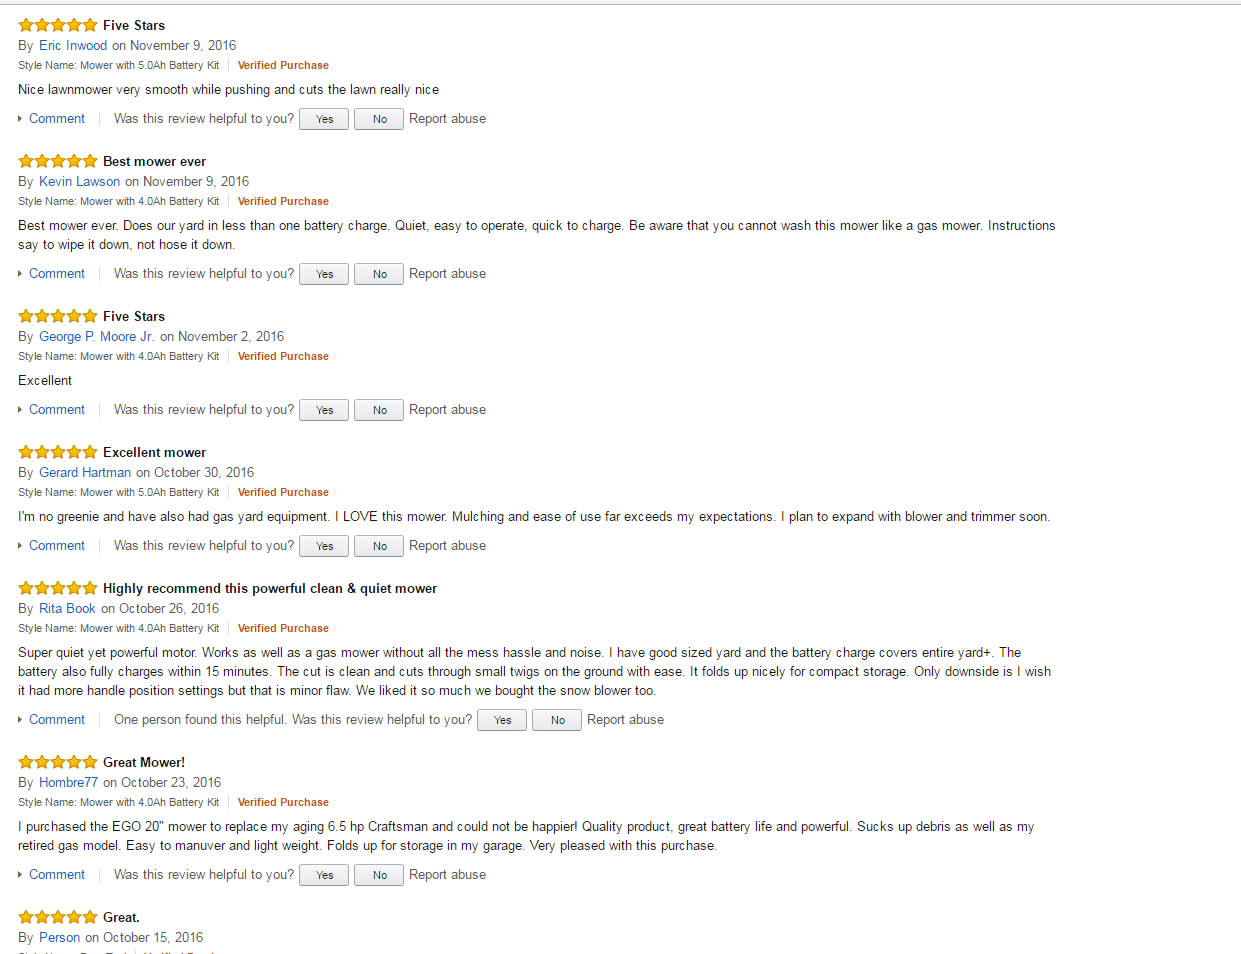 5 star reviews from Amazon.com